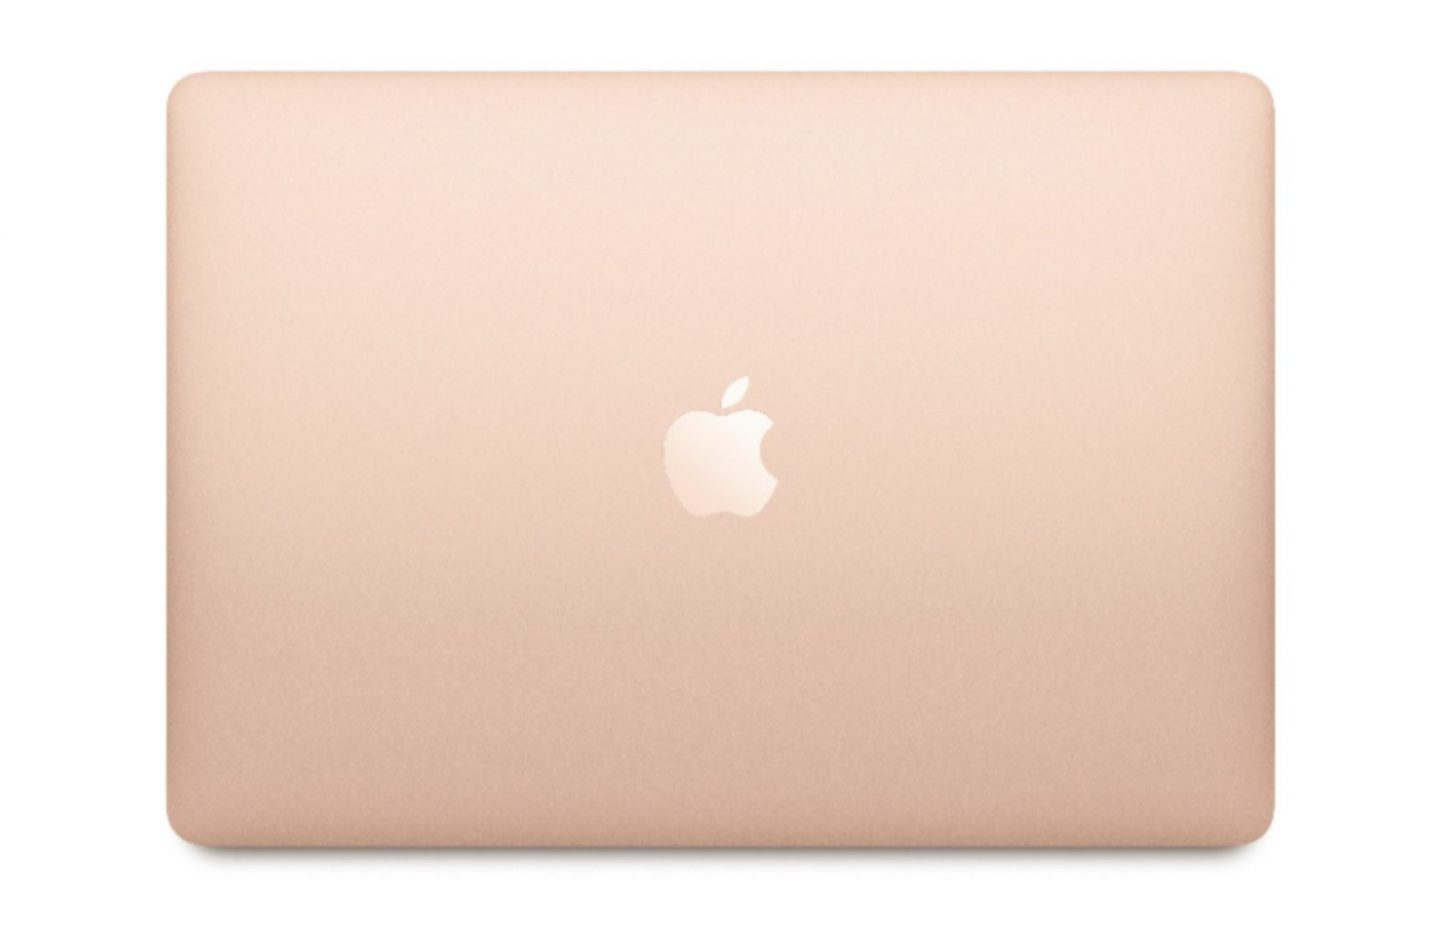 Luxury gifts every girl wants: Gold Apple MacBook Air